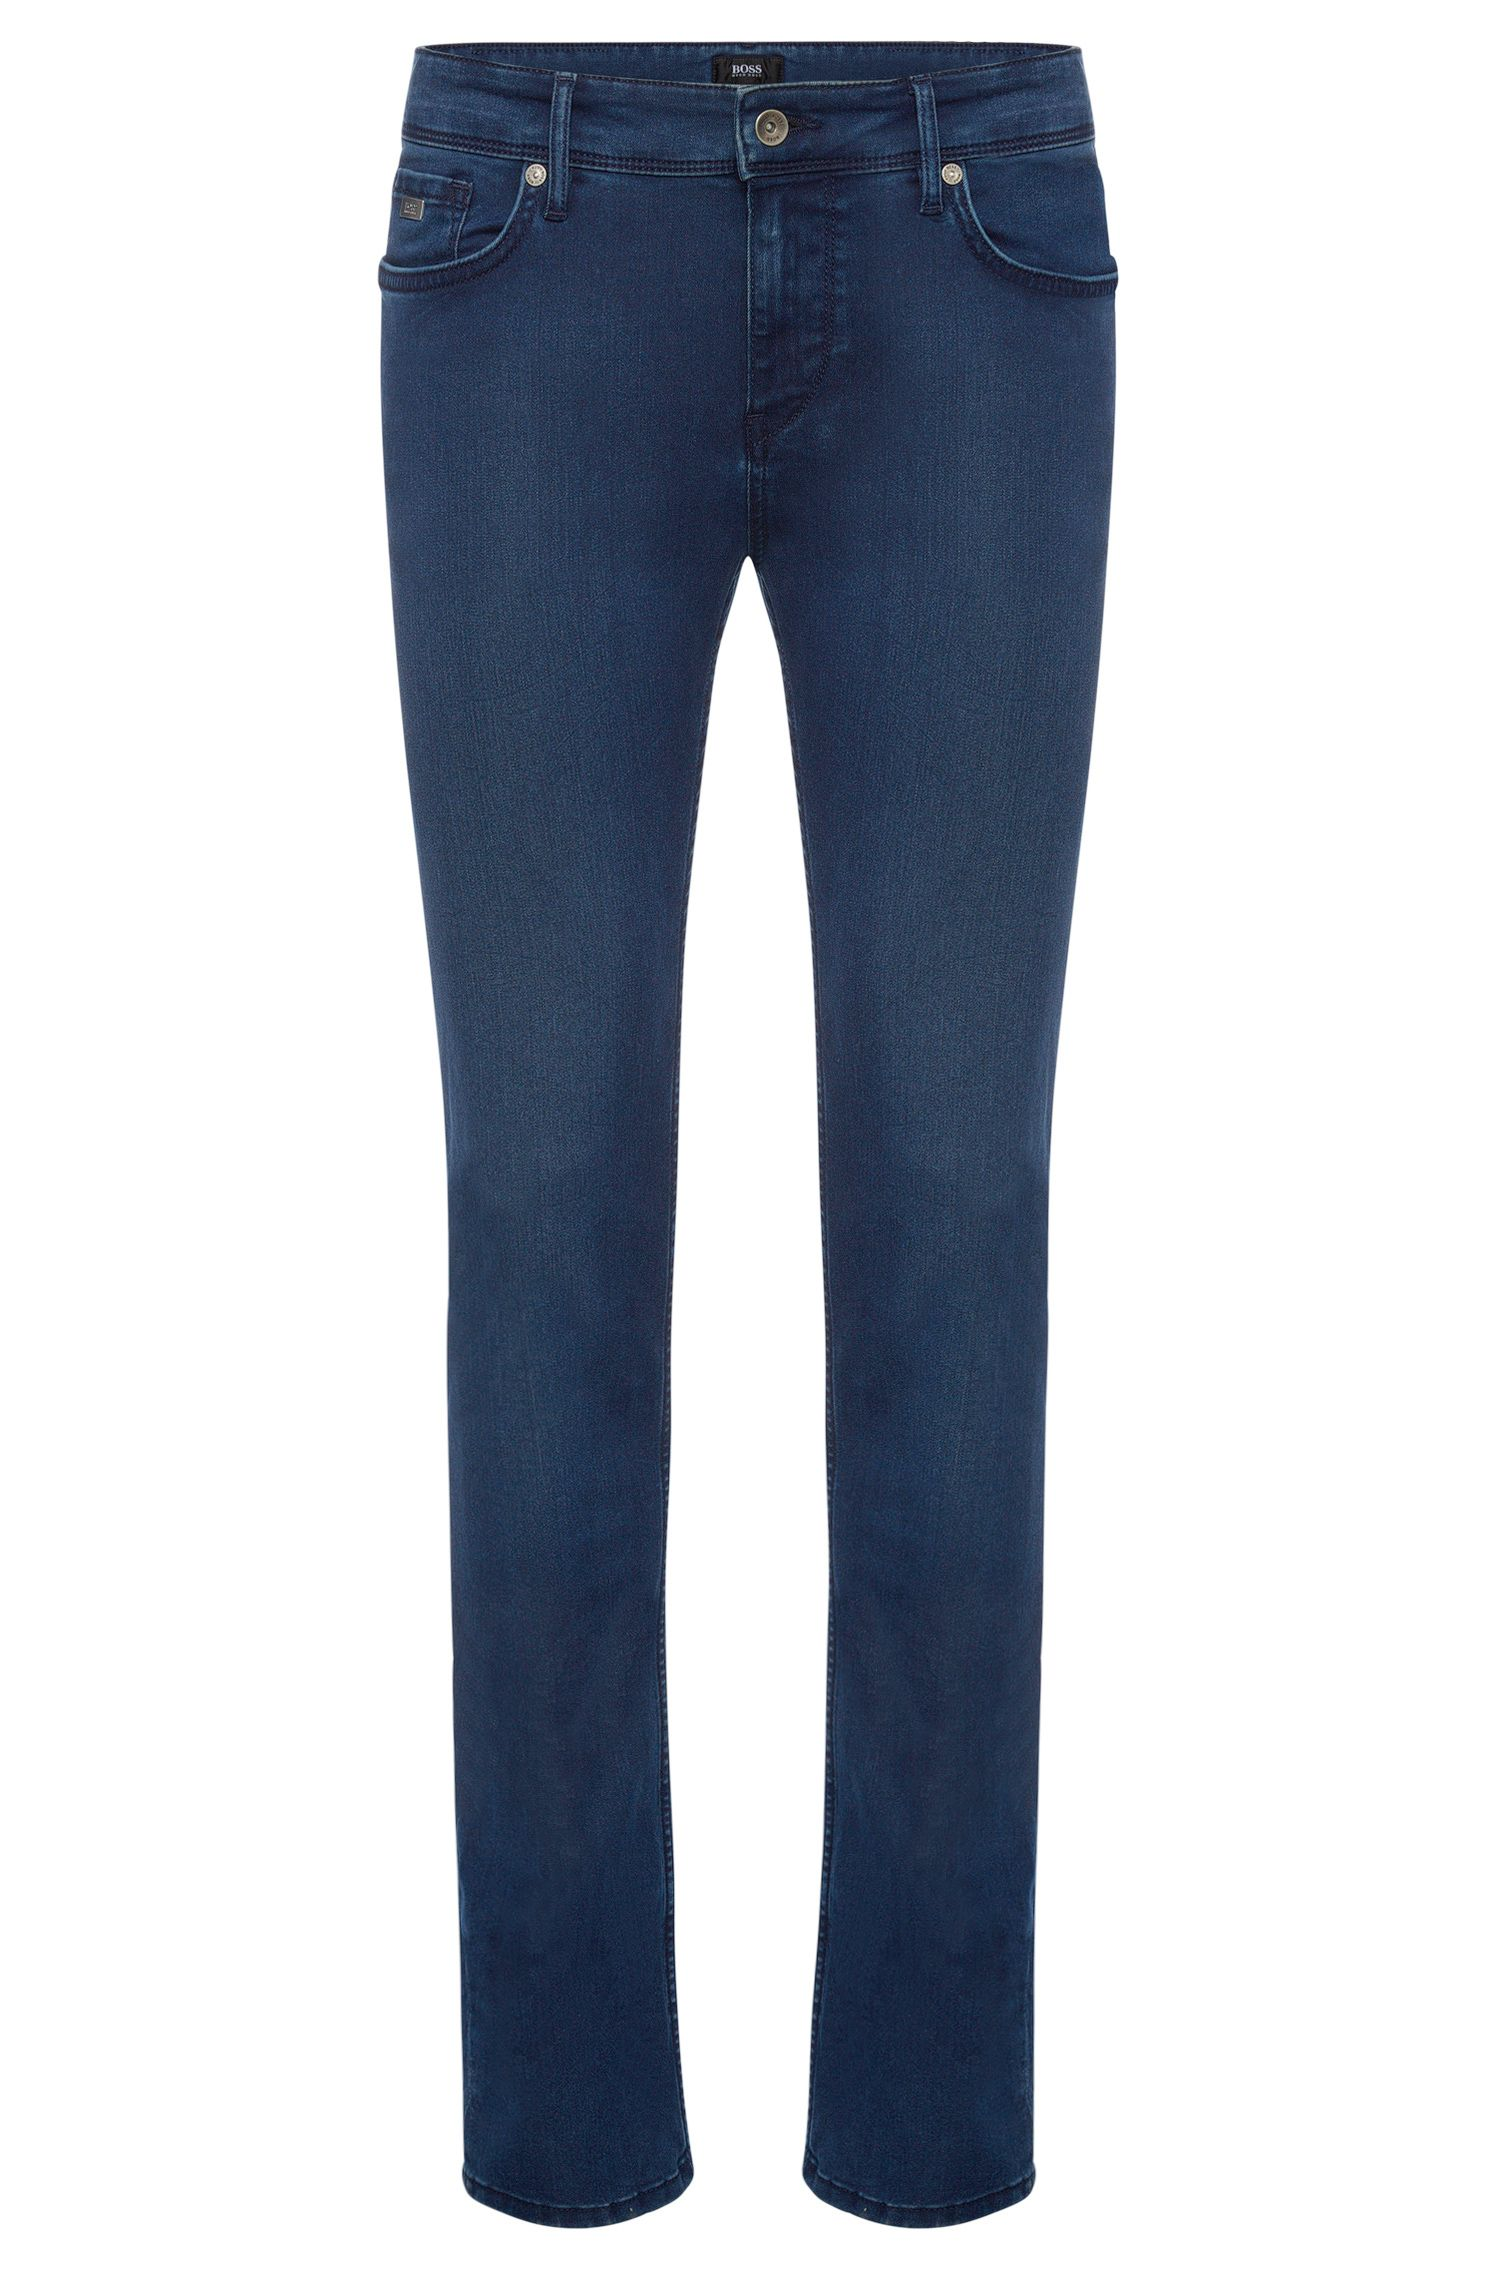 'Charleston' | Extra Slim Fit, 8 oz Stretch Cotton Blend Jeans